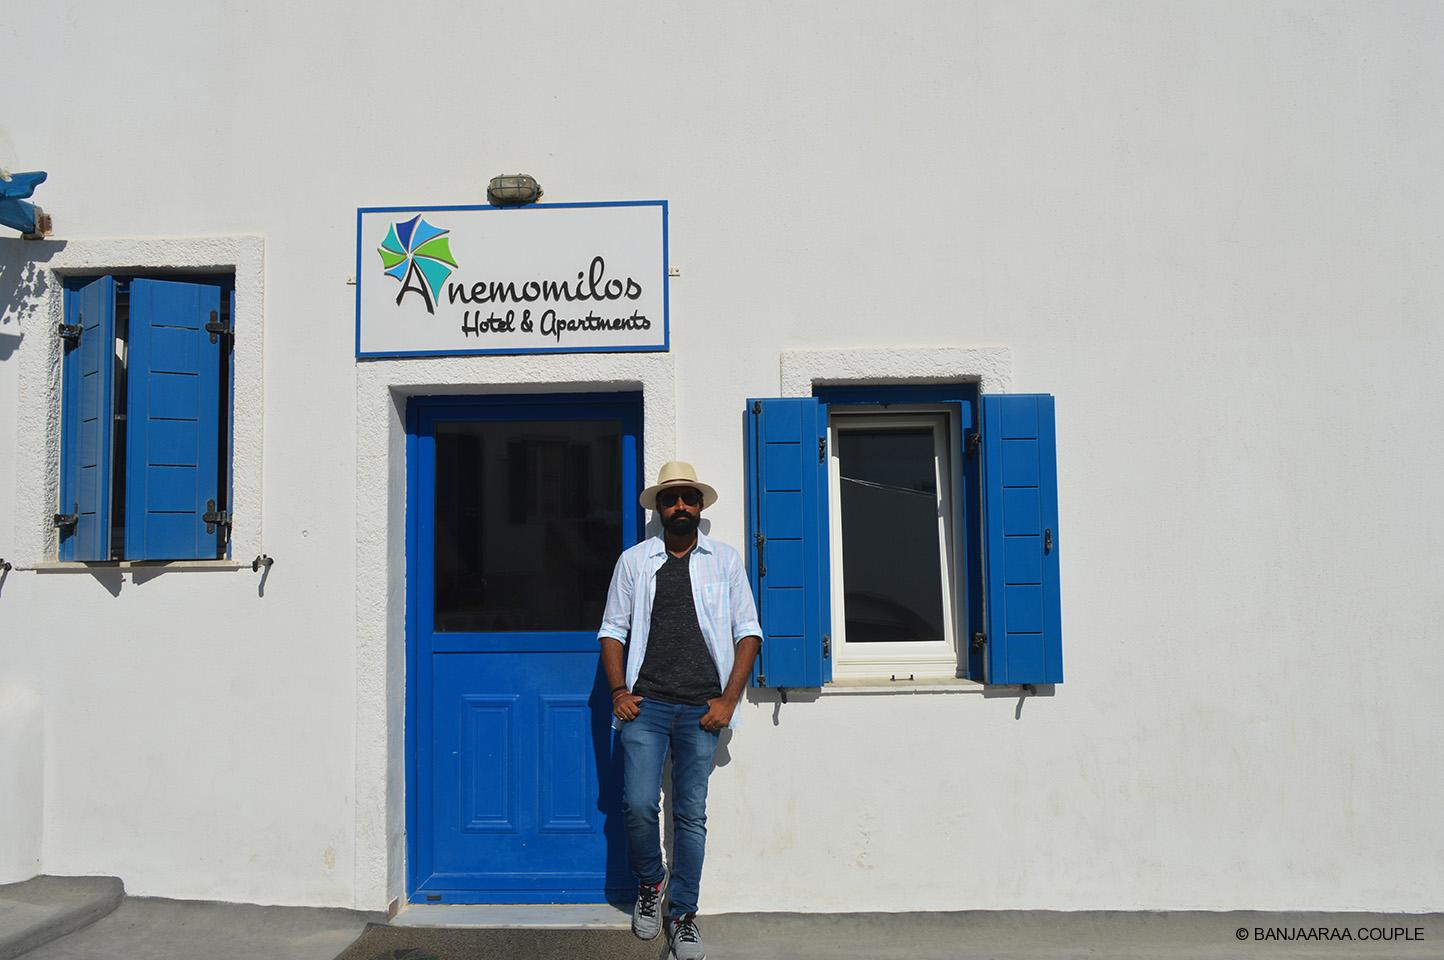 Our stay in Oia - Hotel Anemomilos